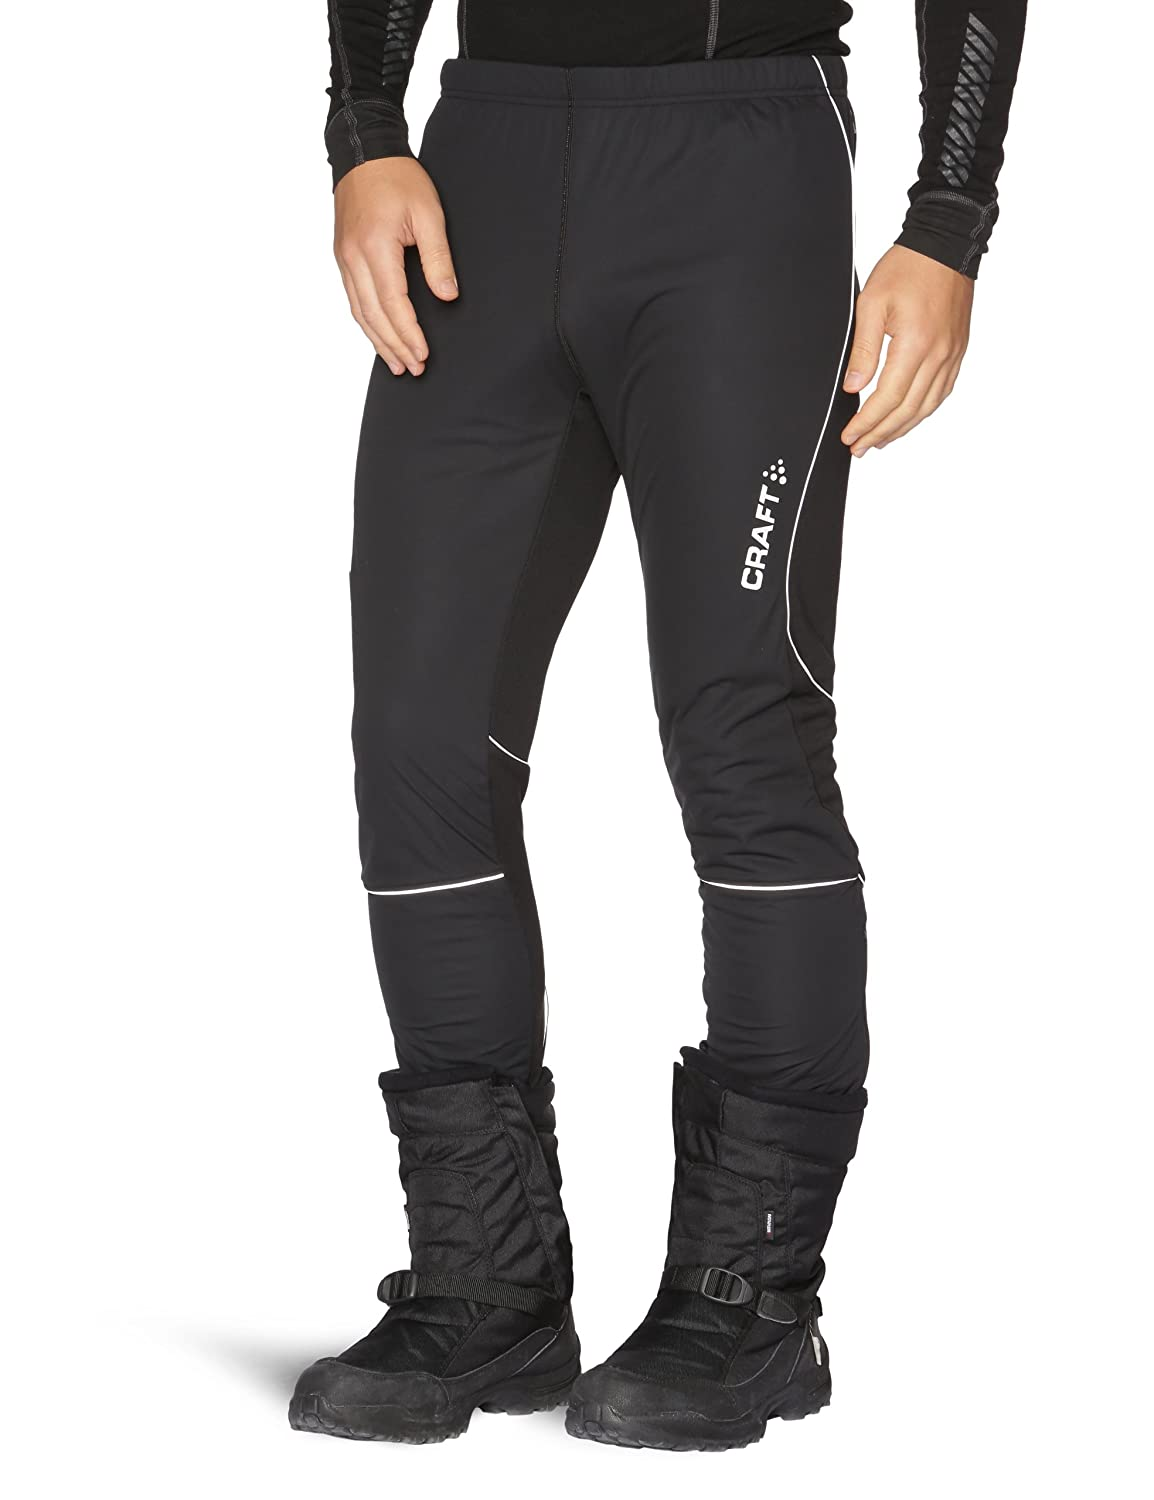 Craft Herren Langlaufhose Storm Tight